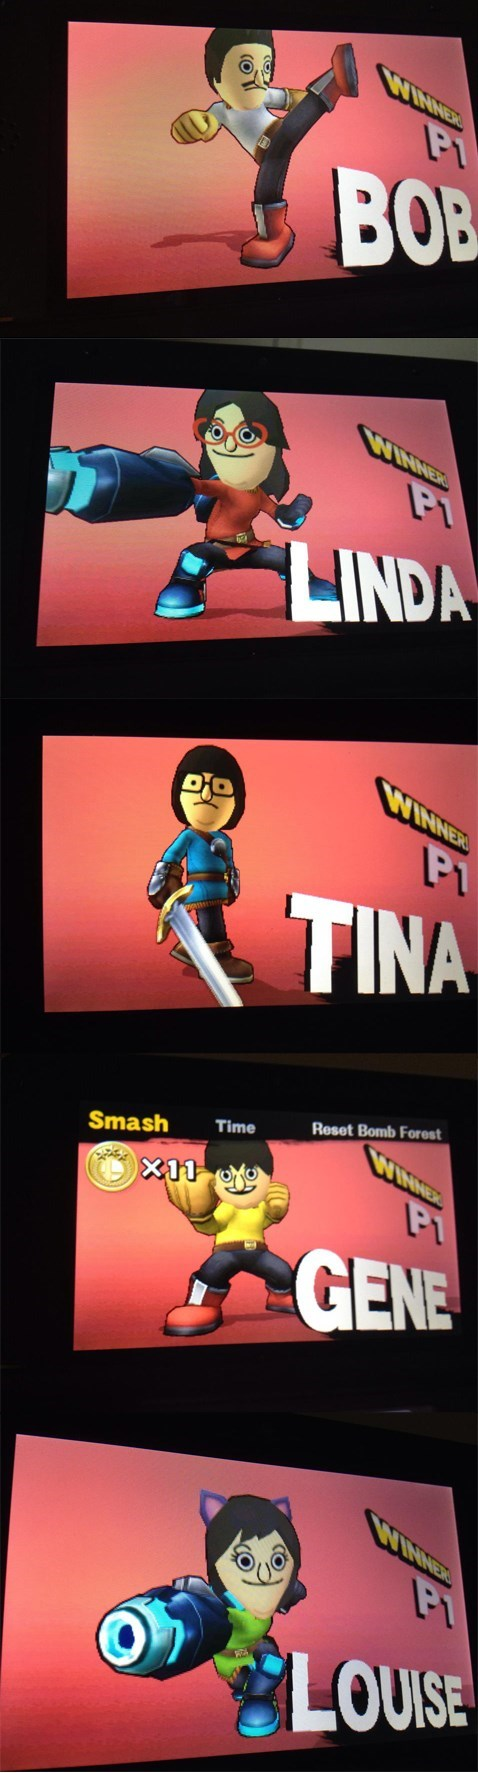 super smash bros bobs burgers - 8339873792